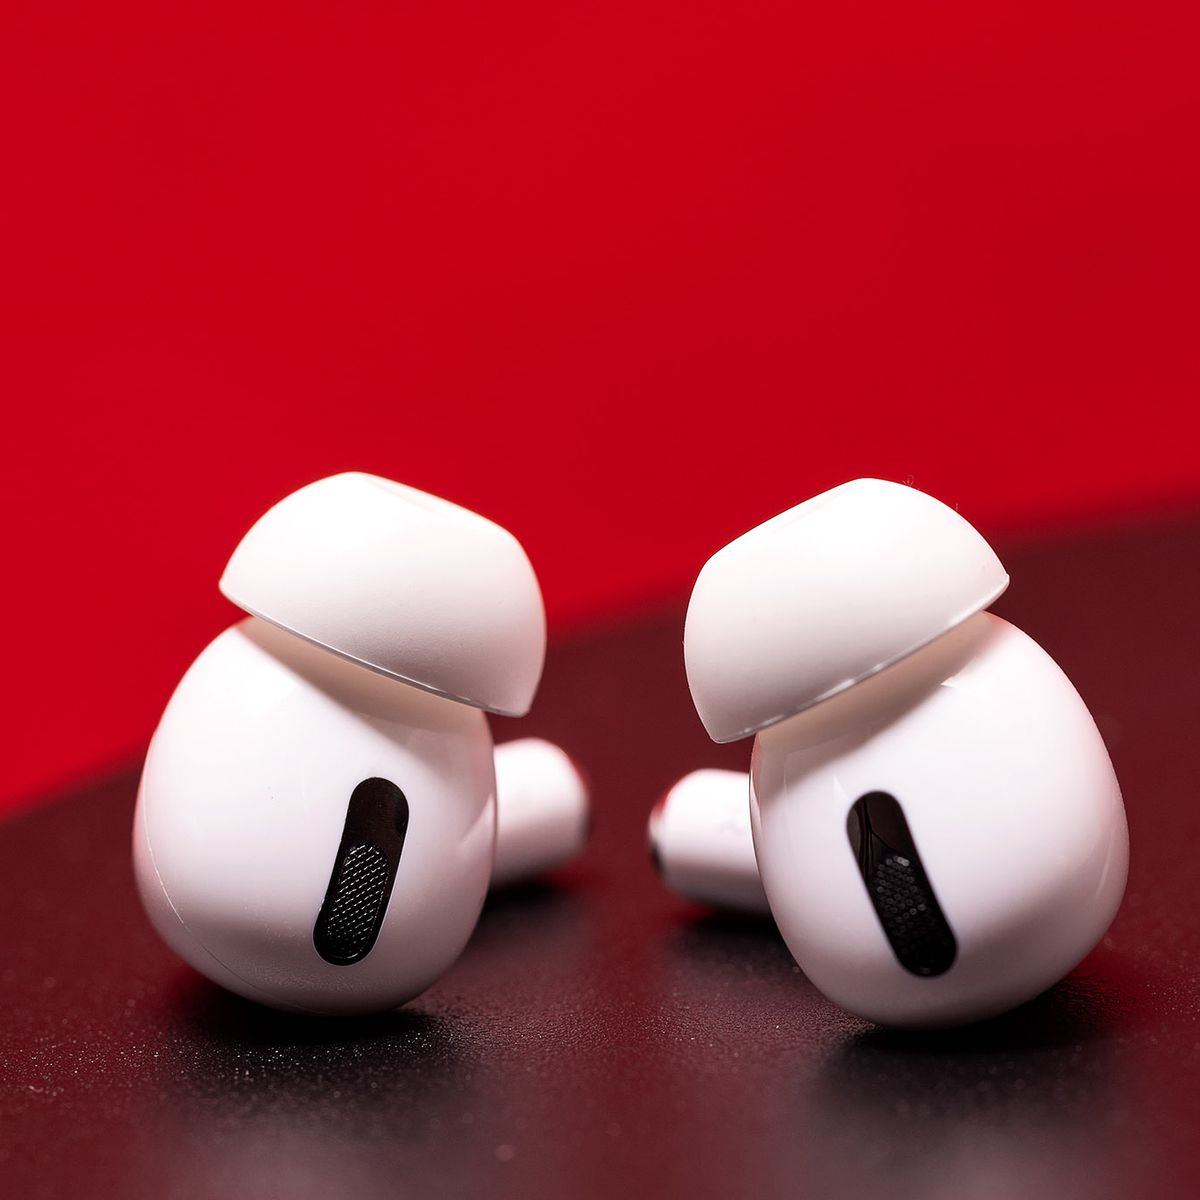 Black Friday Wireless Earbuds Deals The Verge